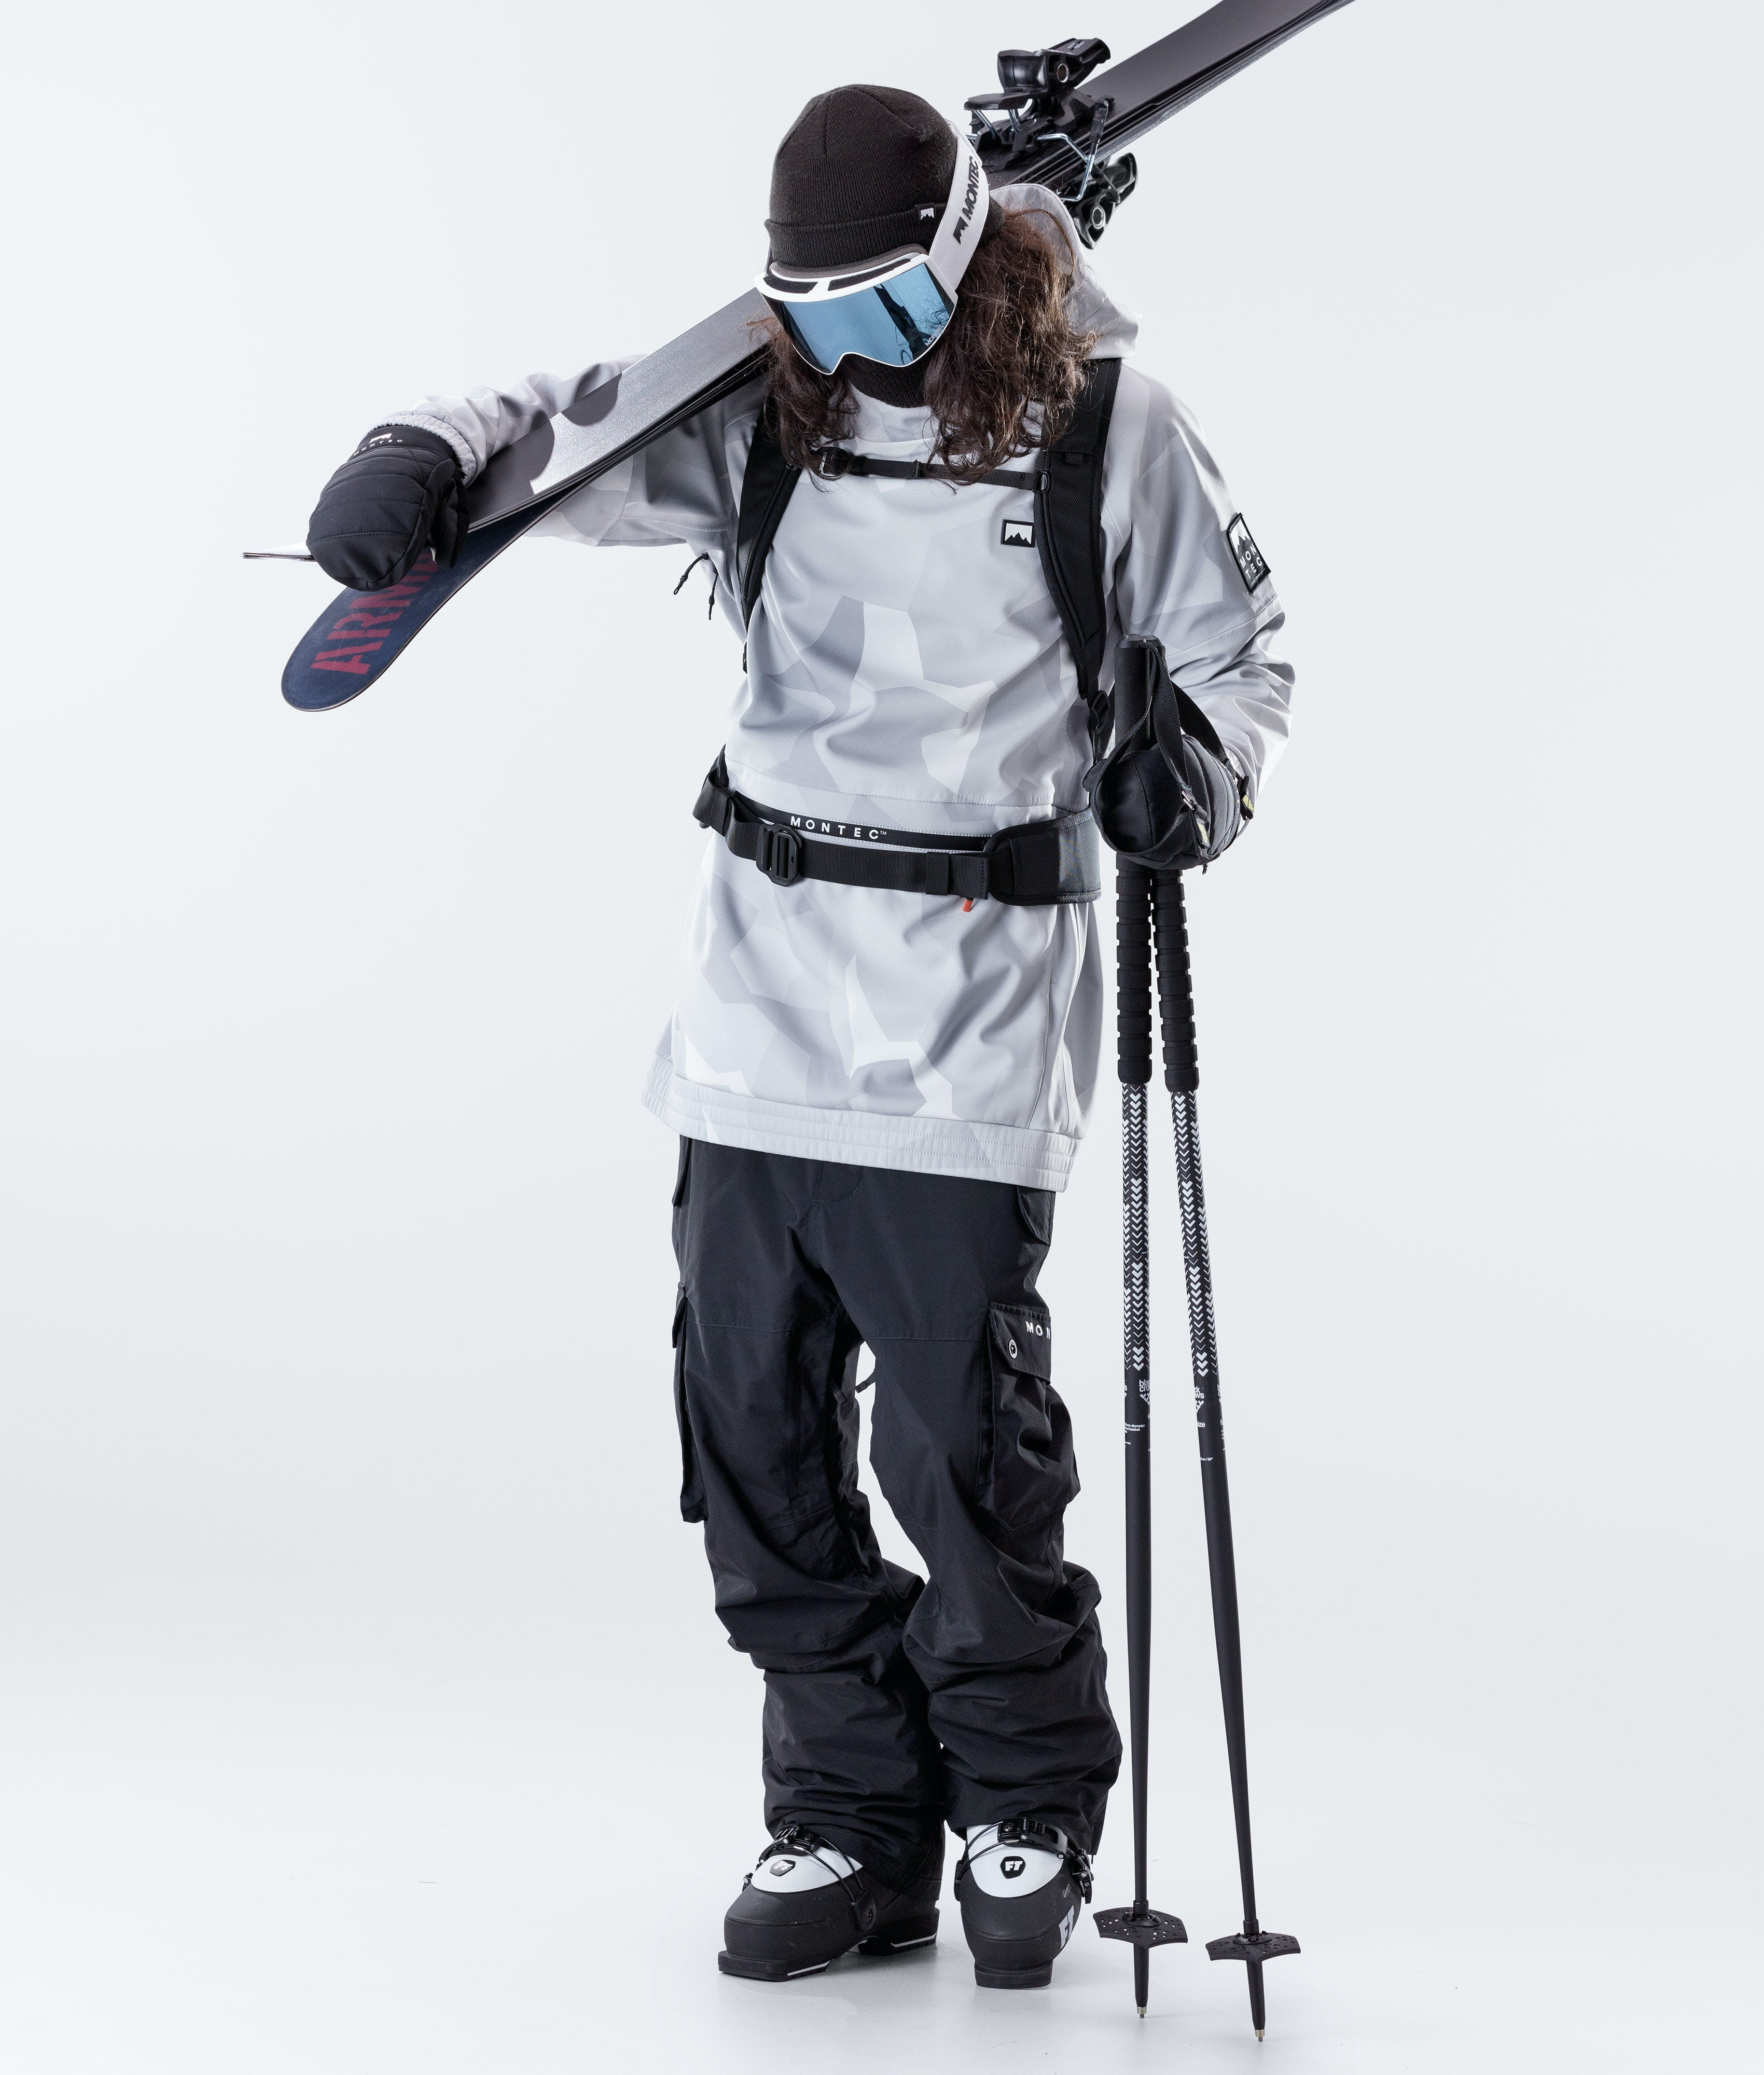 What is the difference between snowboarding and skiing pants?